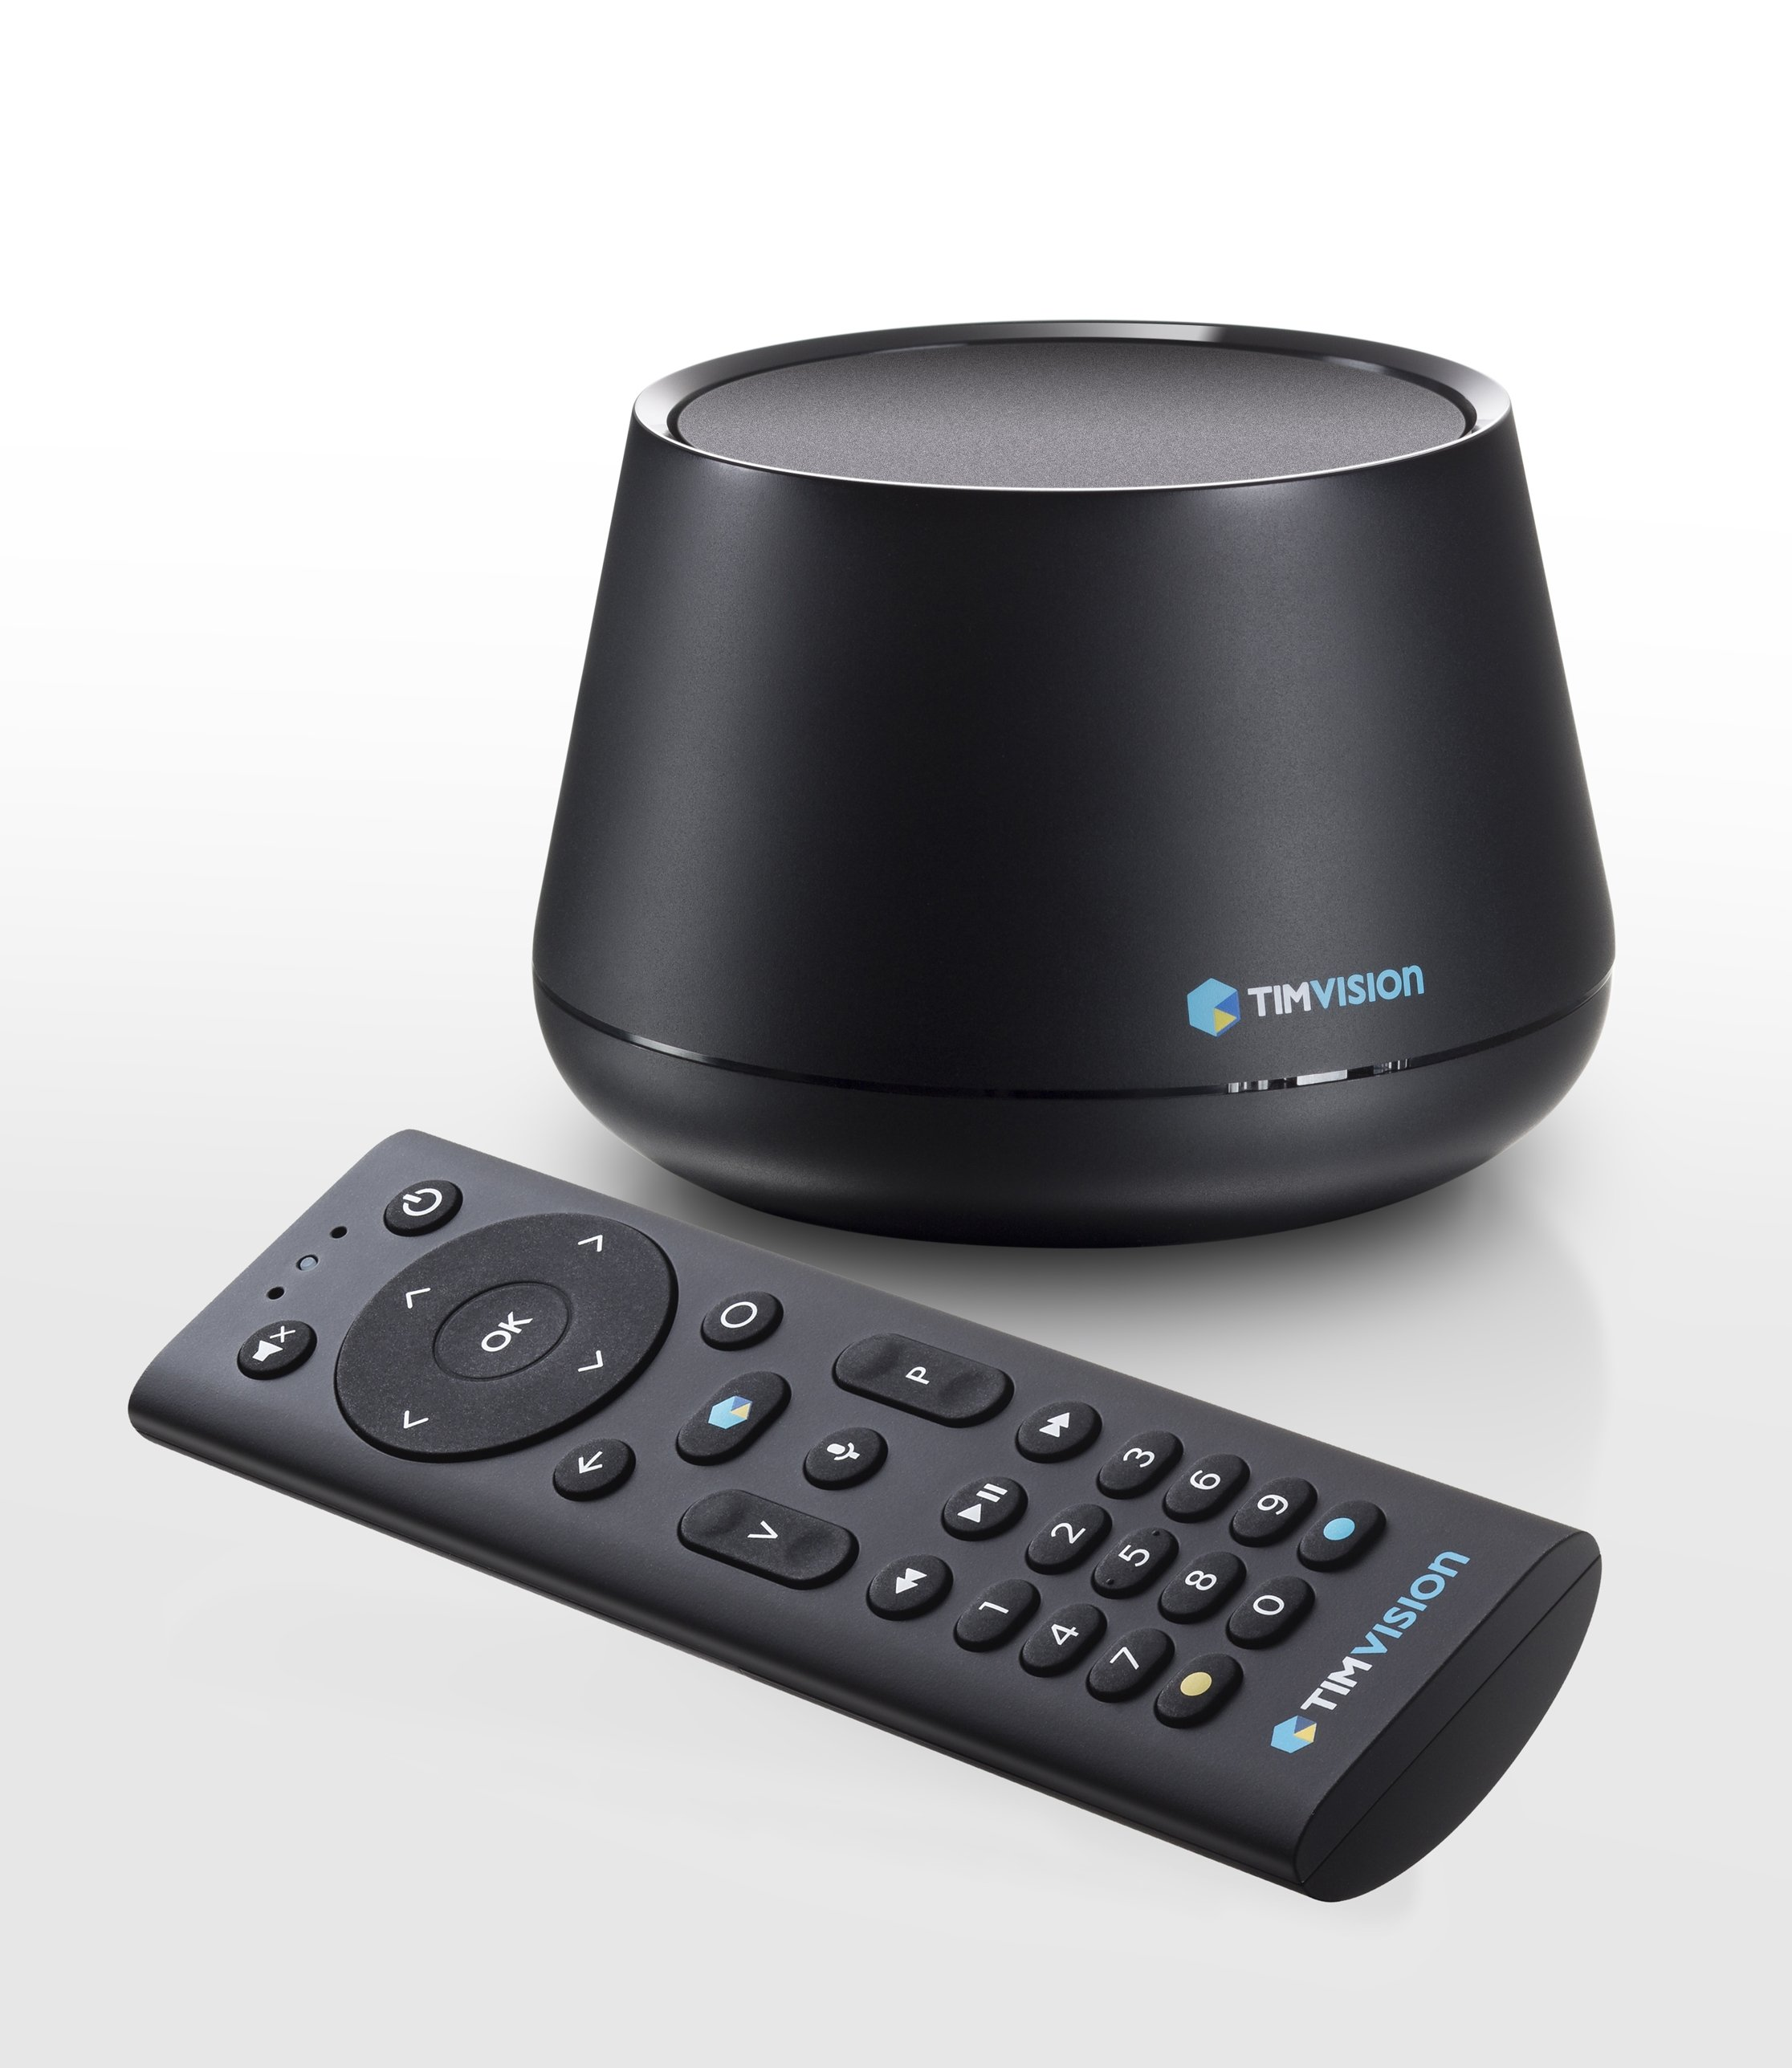 nuovo decoder timvision ufficiale 4k e android tv